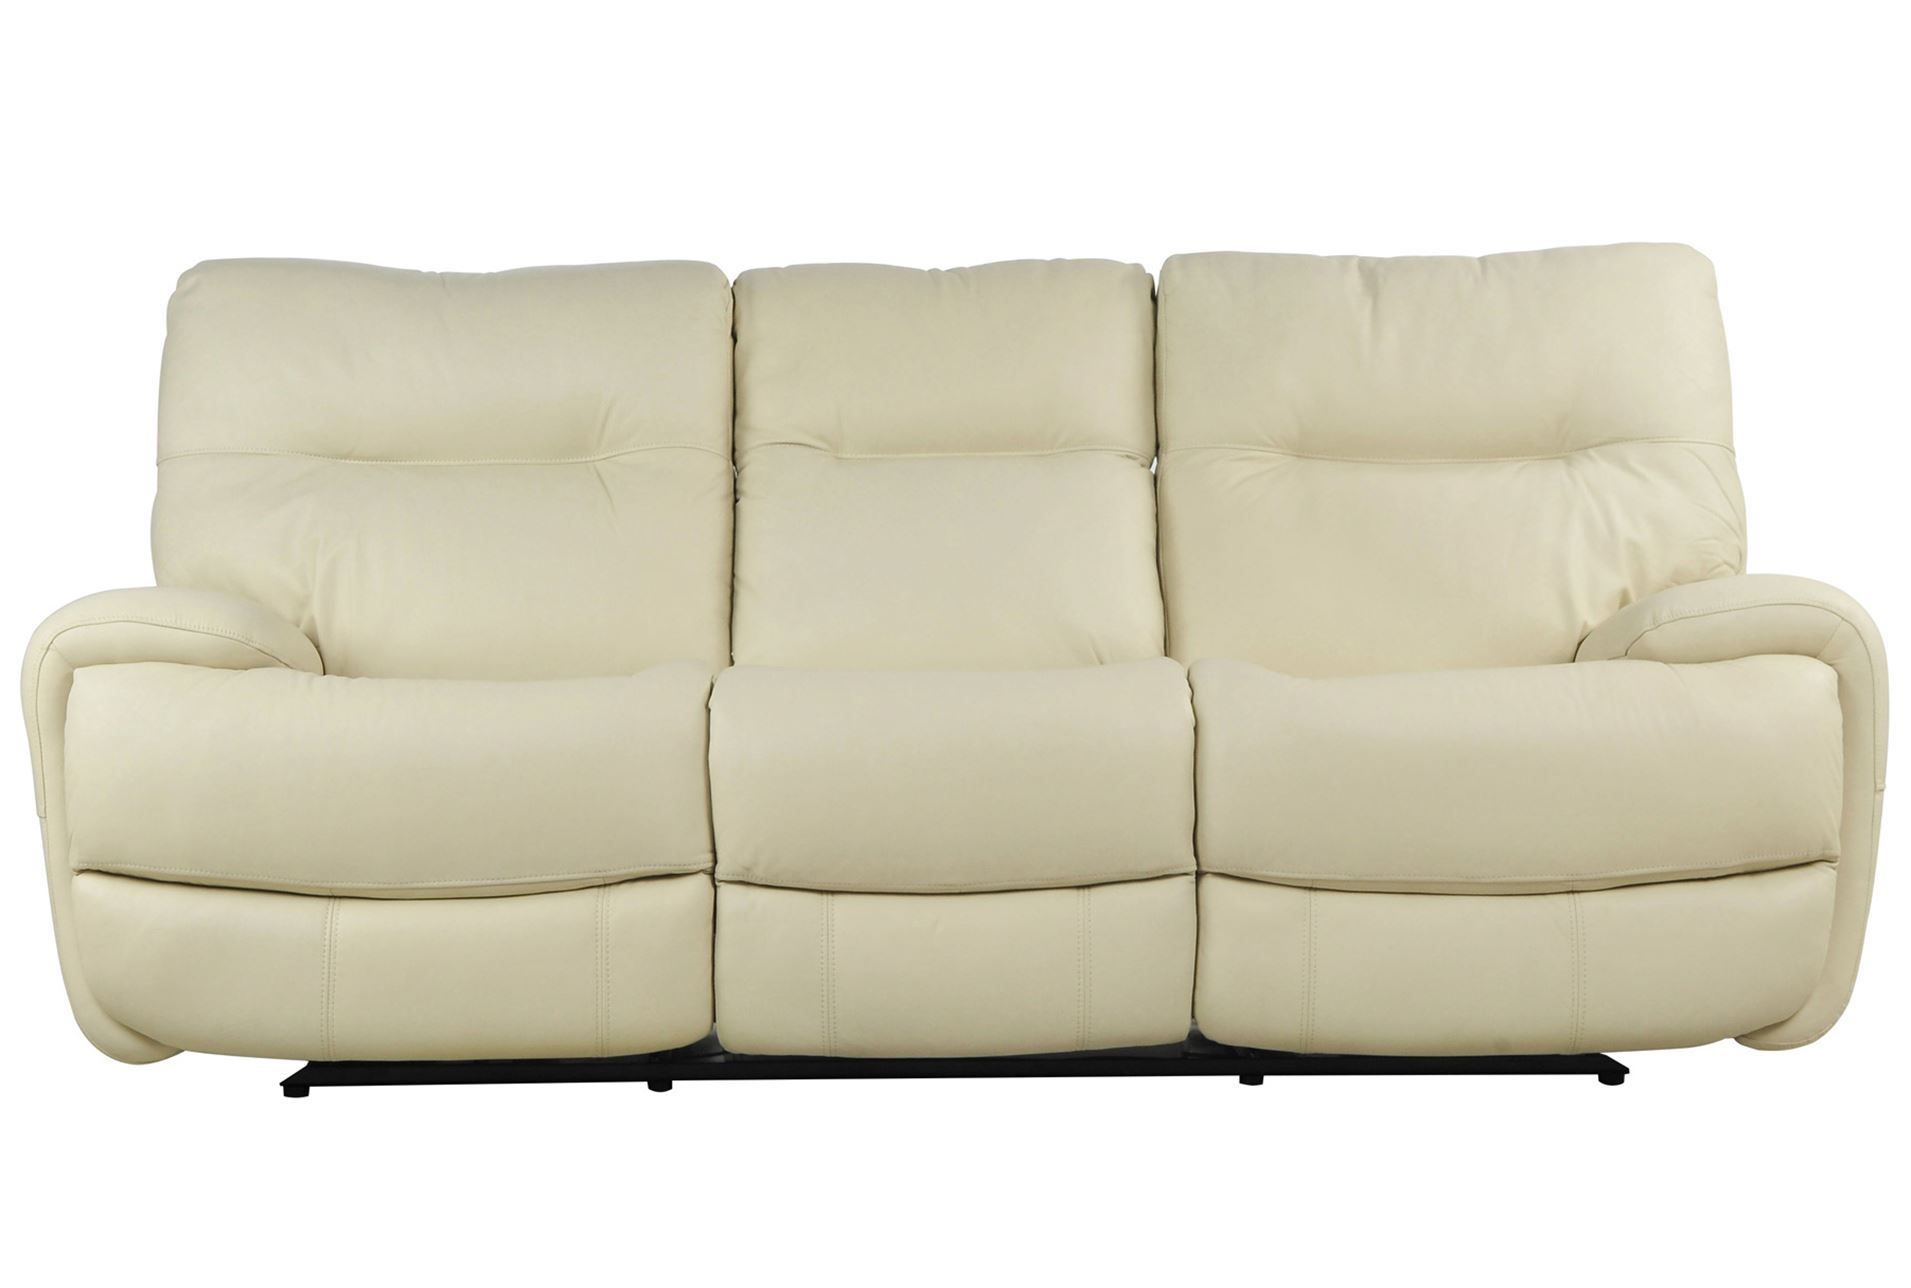 The Overly Reclining Sofa from Ashley Furniture HomeStore AFHS